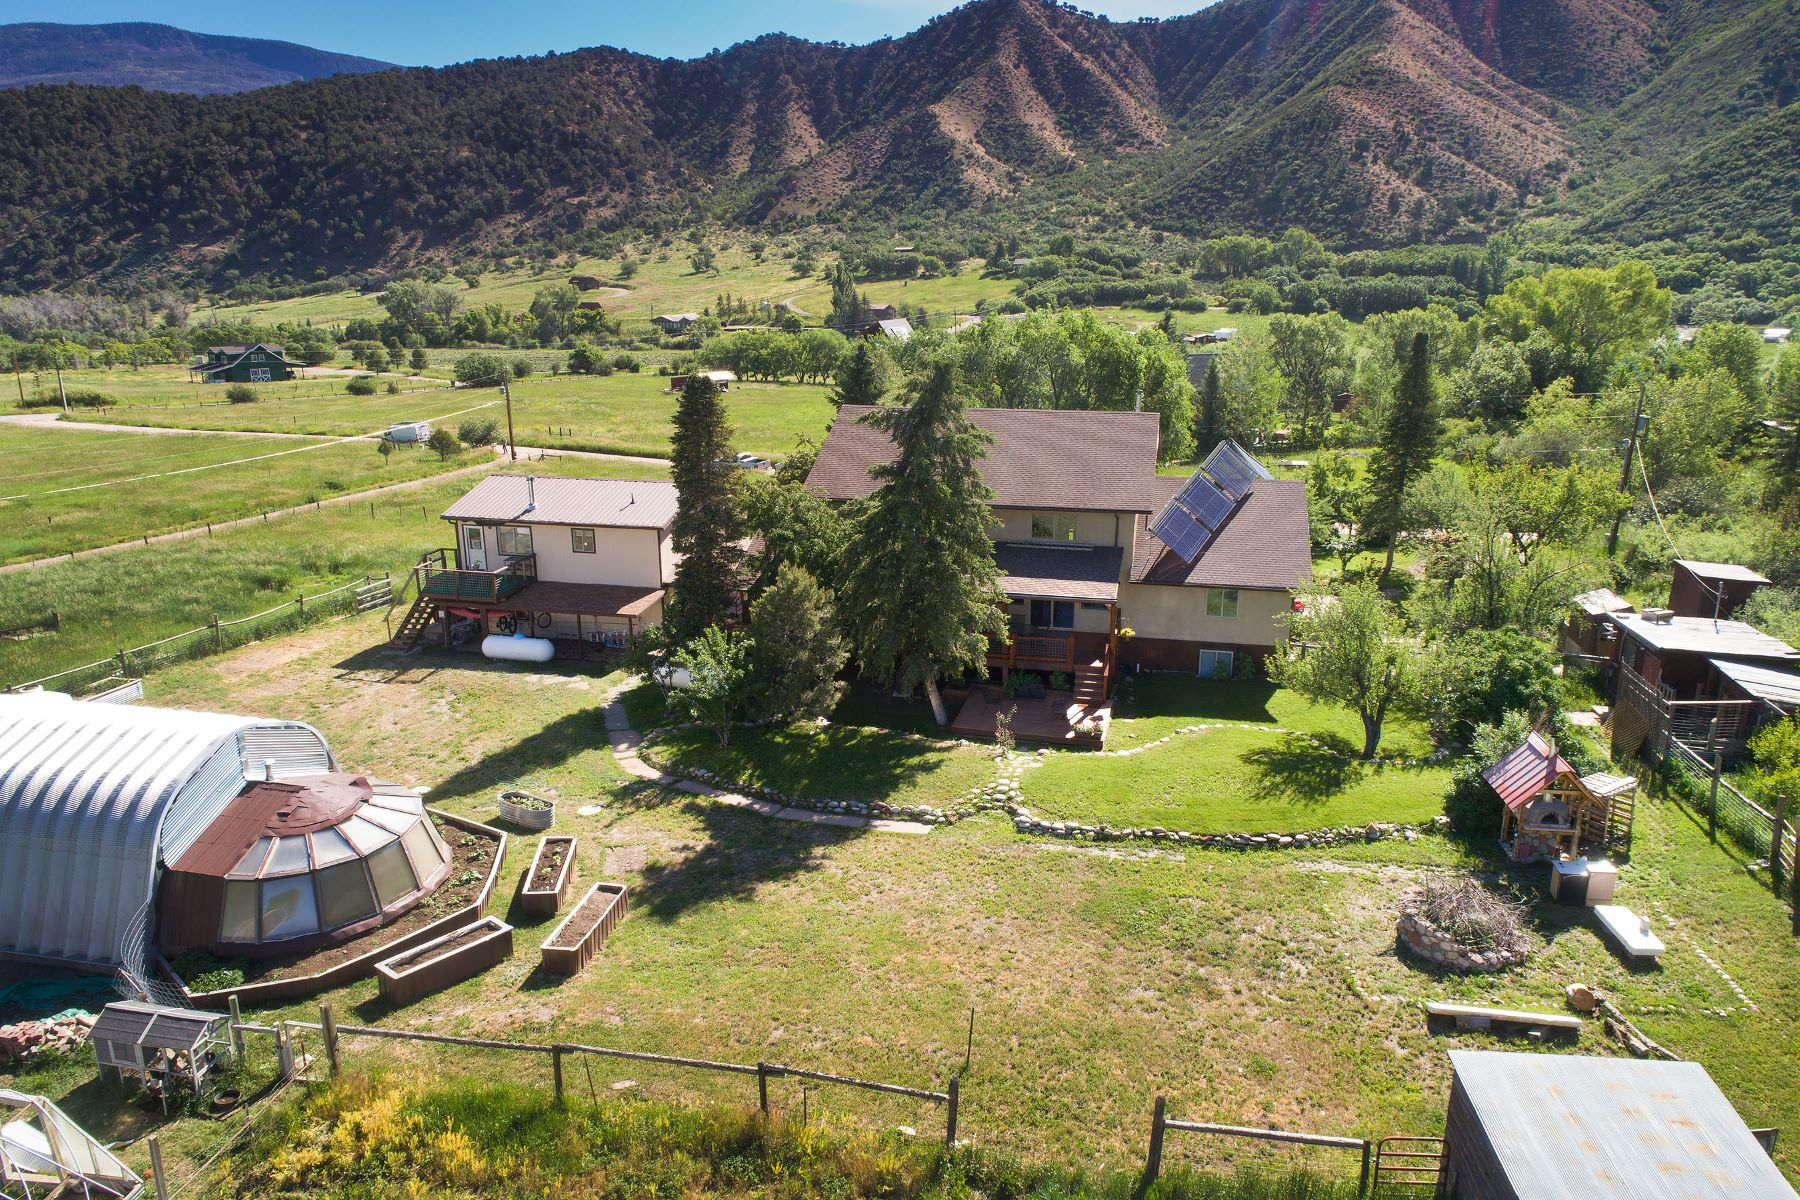 Single Family Homes for Sale at Idyllic, peaceful ranchette in Emma 101 Vagneur Lane Basalt, Colorado 81621 United States